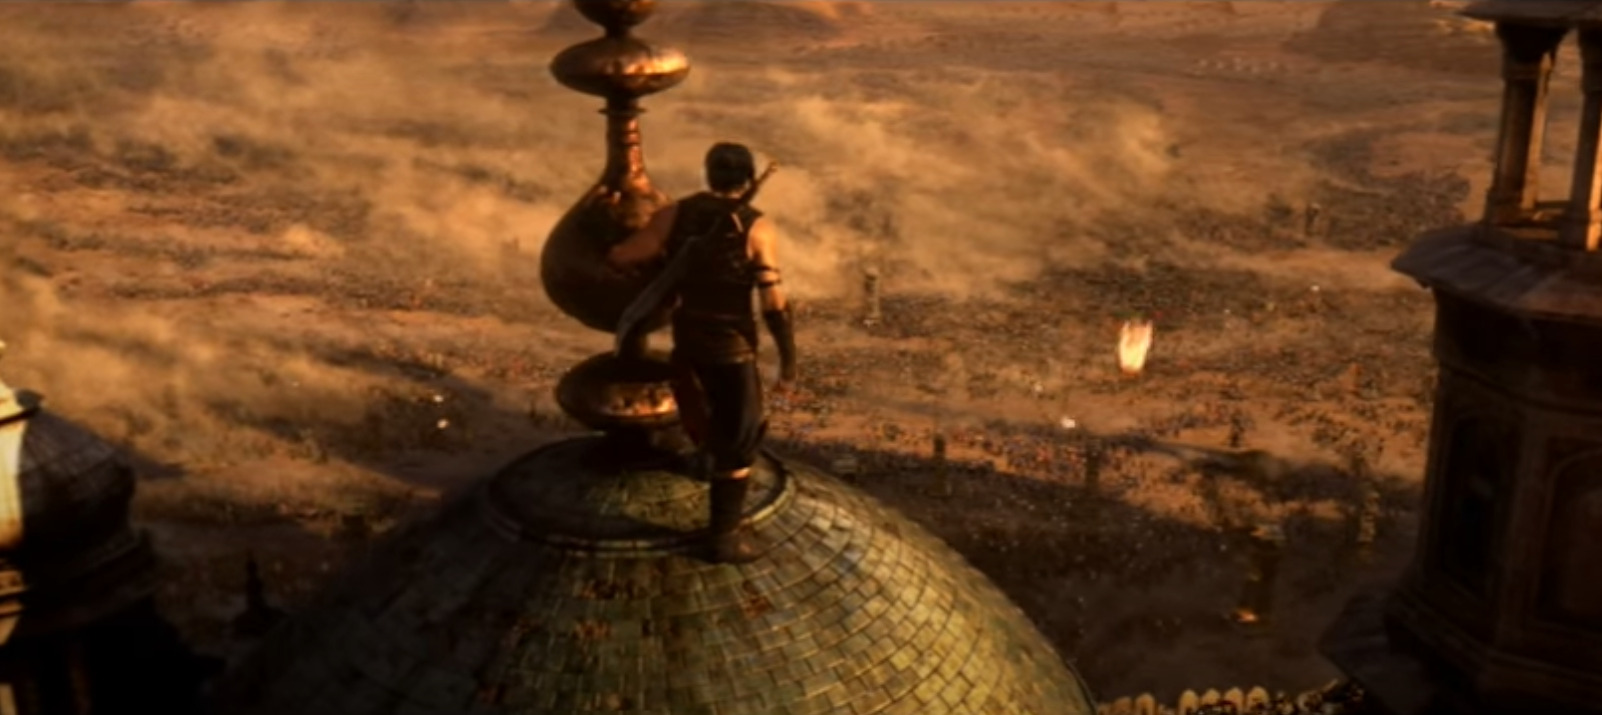 Ubisoft Is Rumored To Announce A Prince Of Persia Remake During The Upcoming Ubisoft Forward Event This Week